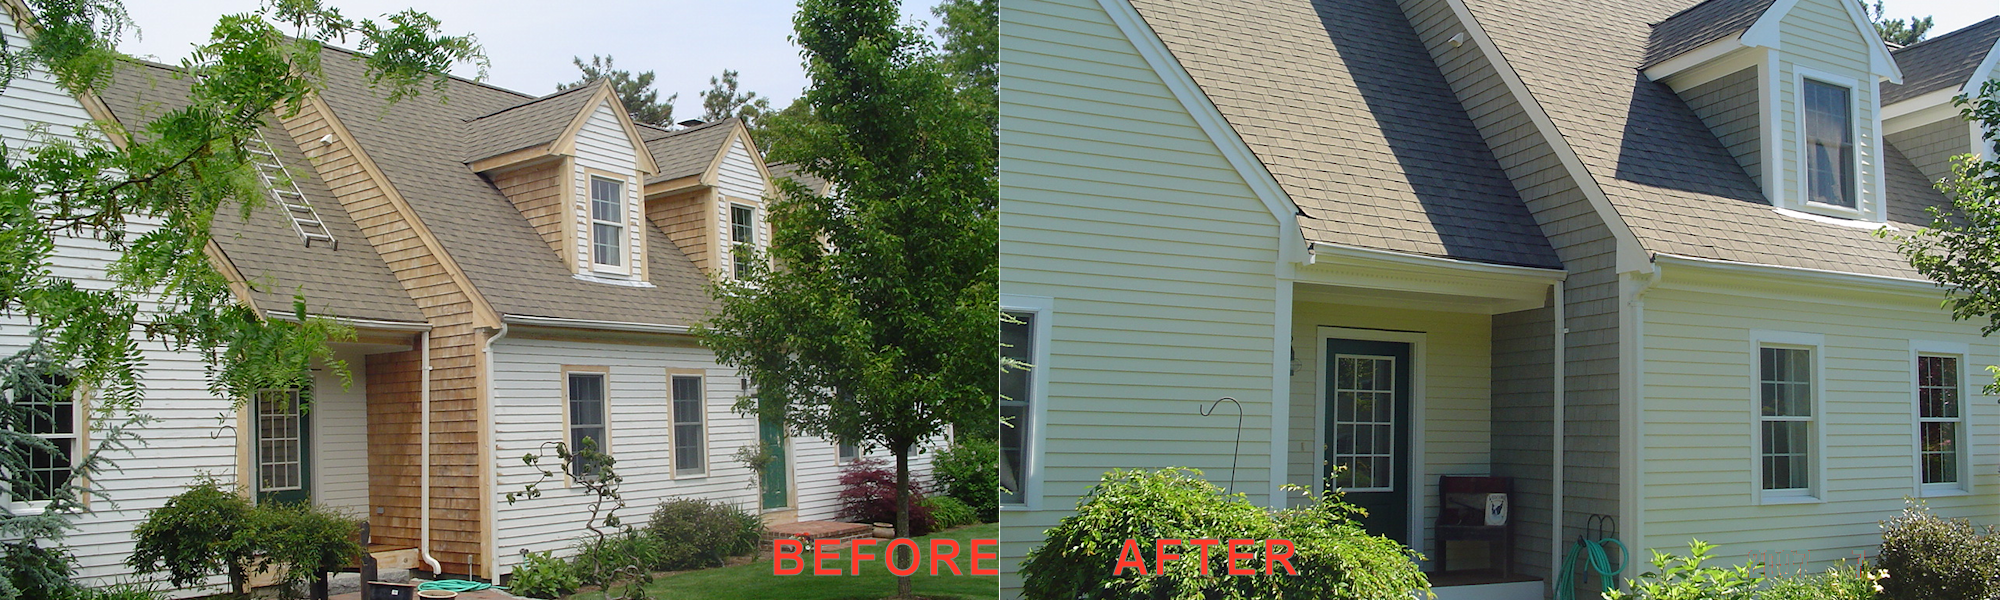 Exterior House Painting = Before and After